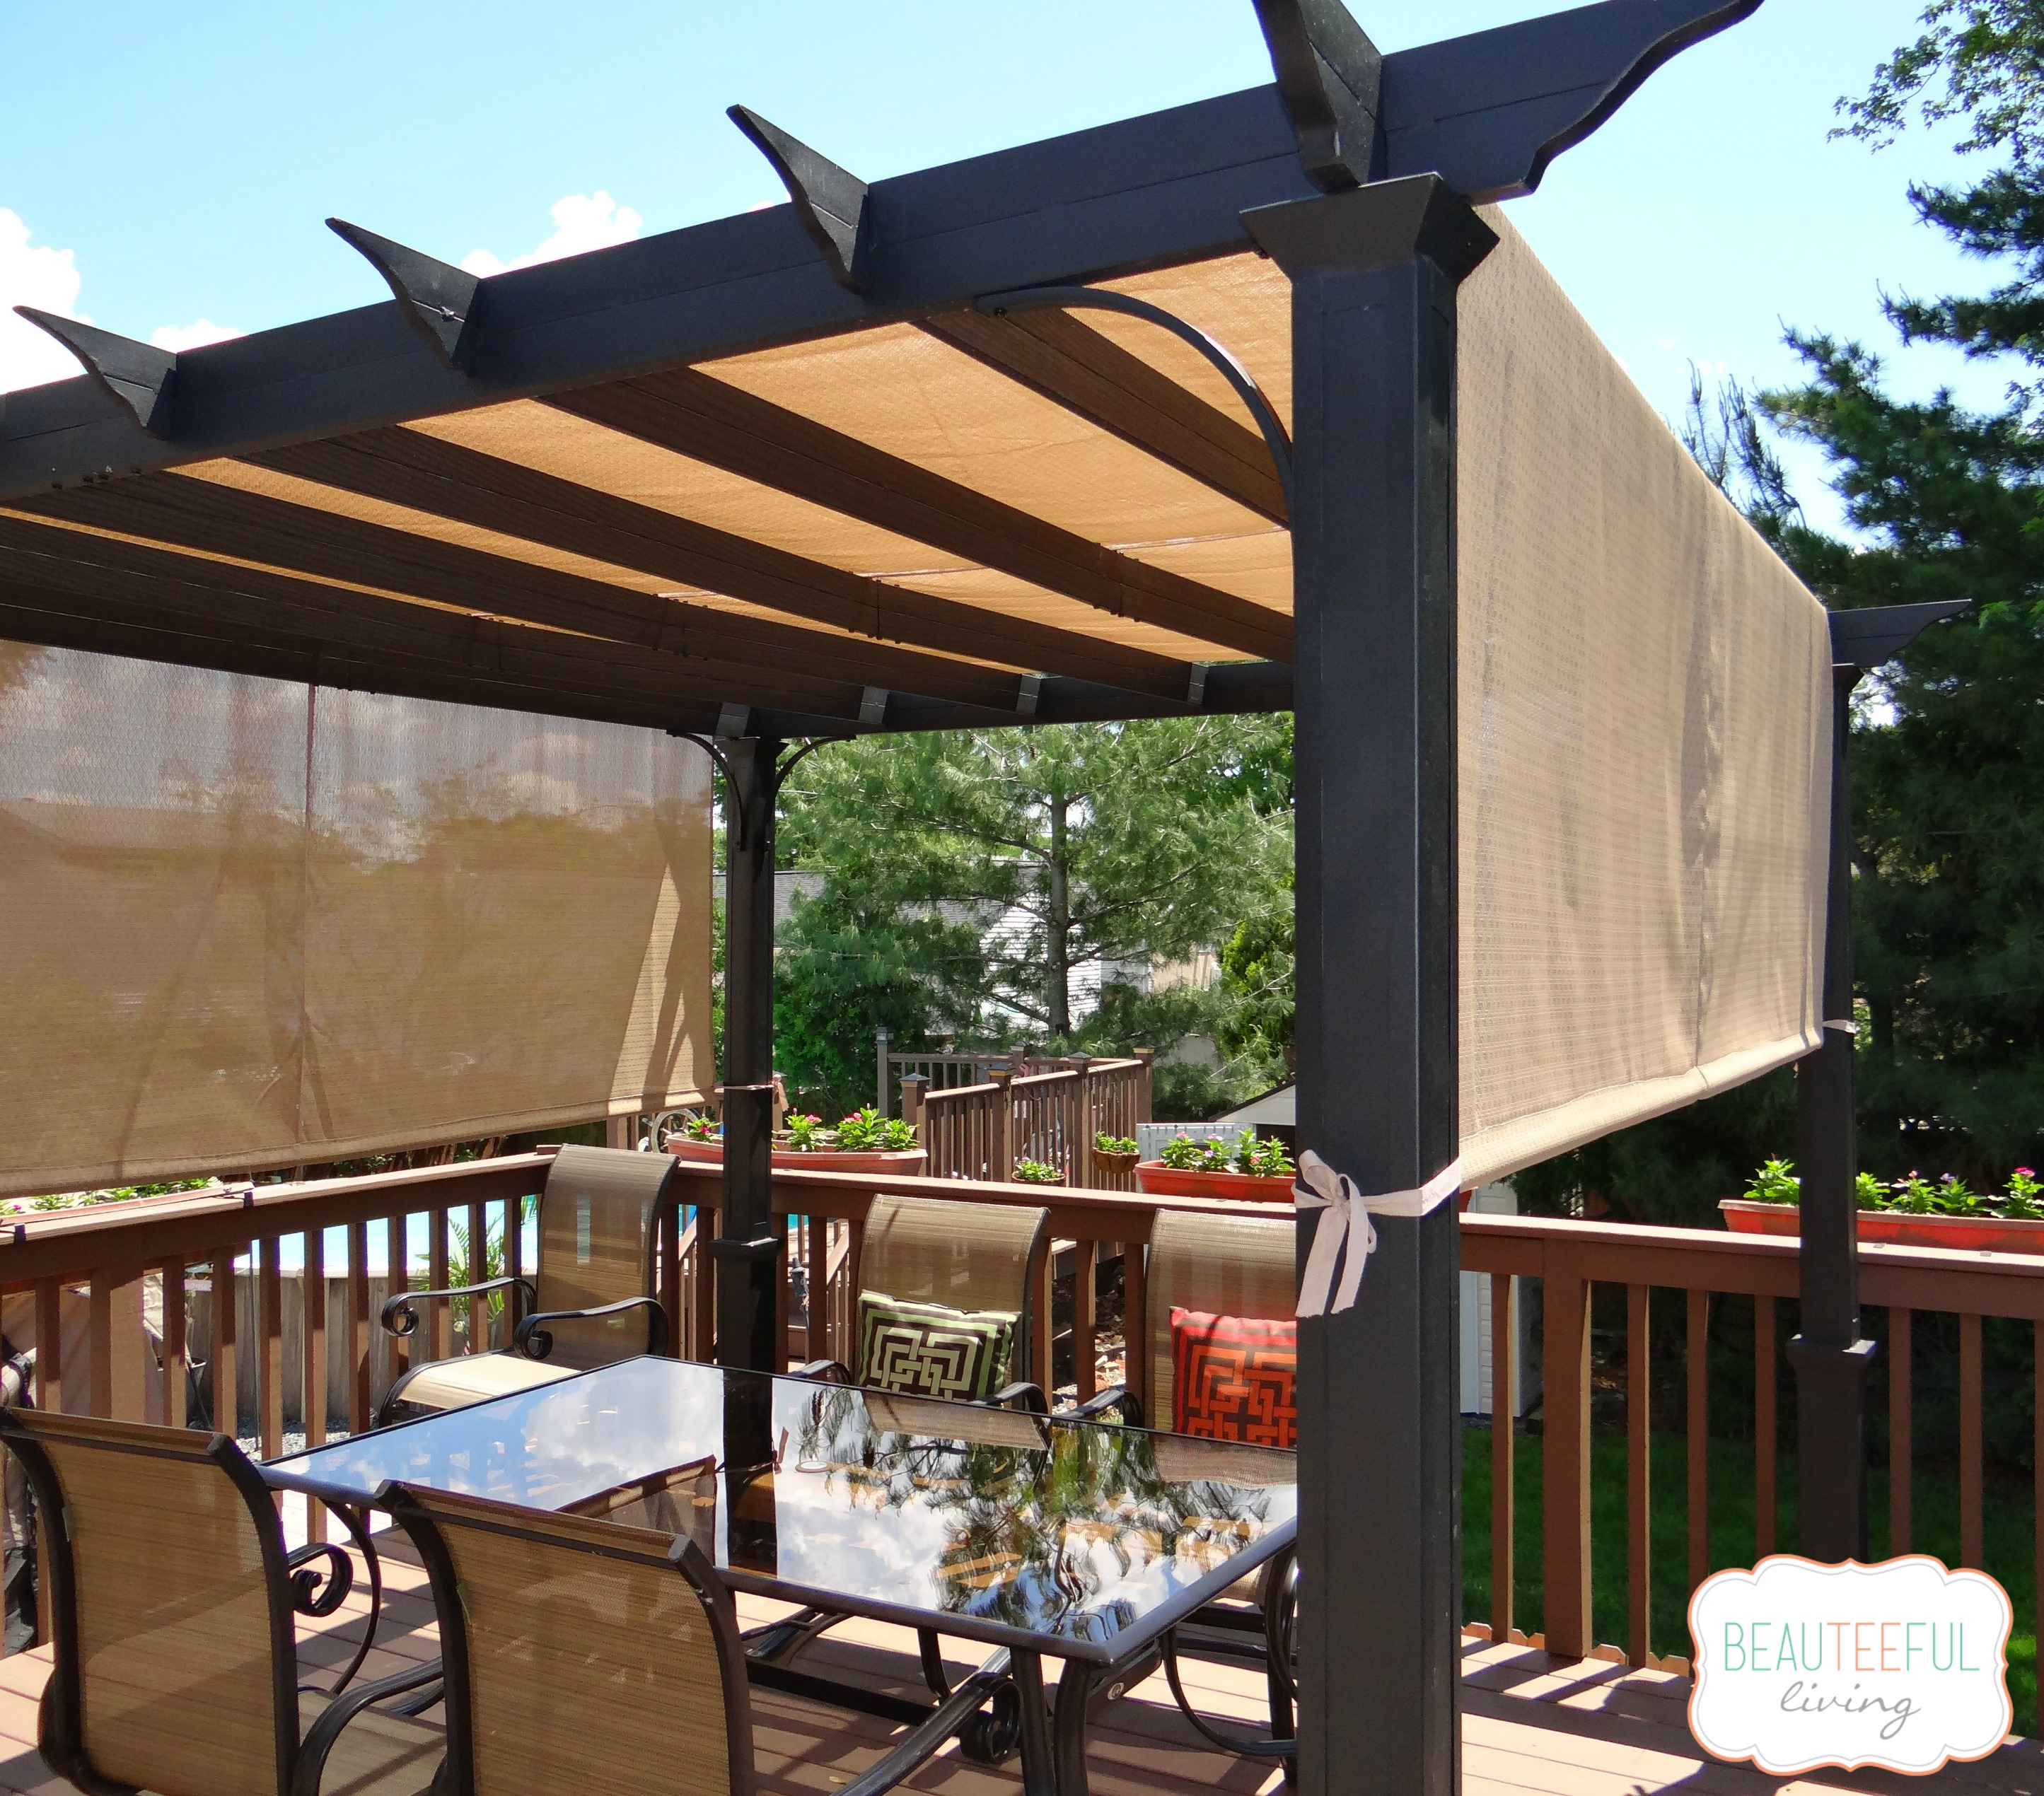 Our new pergola shade at last beauteeful living for Shade arbor designs